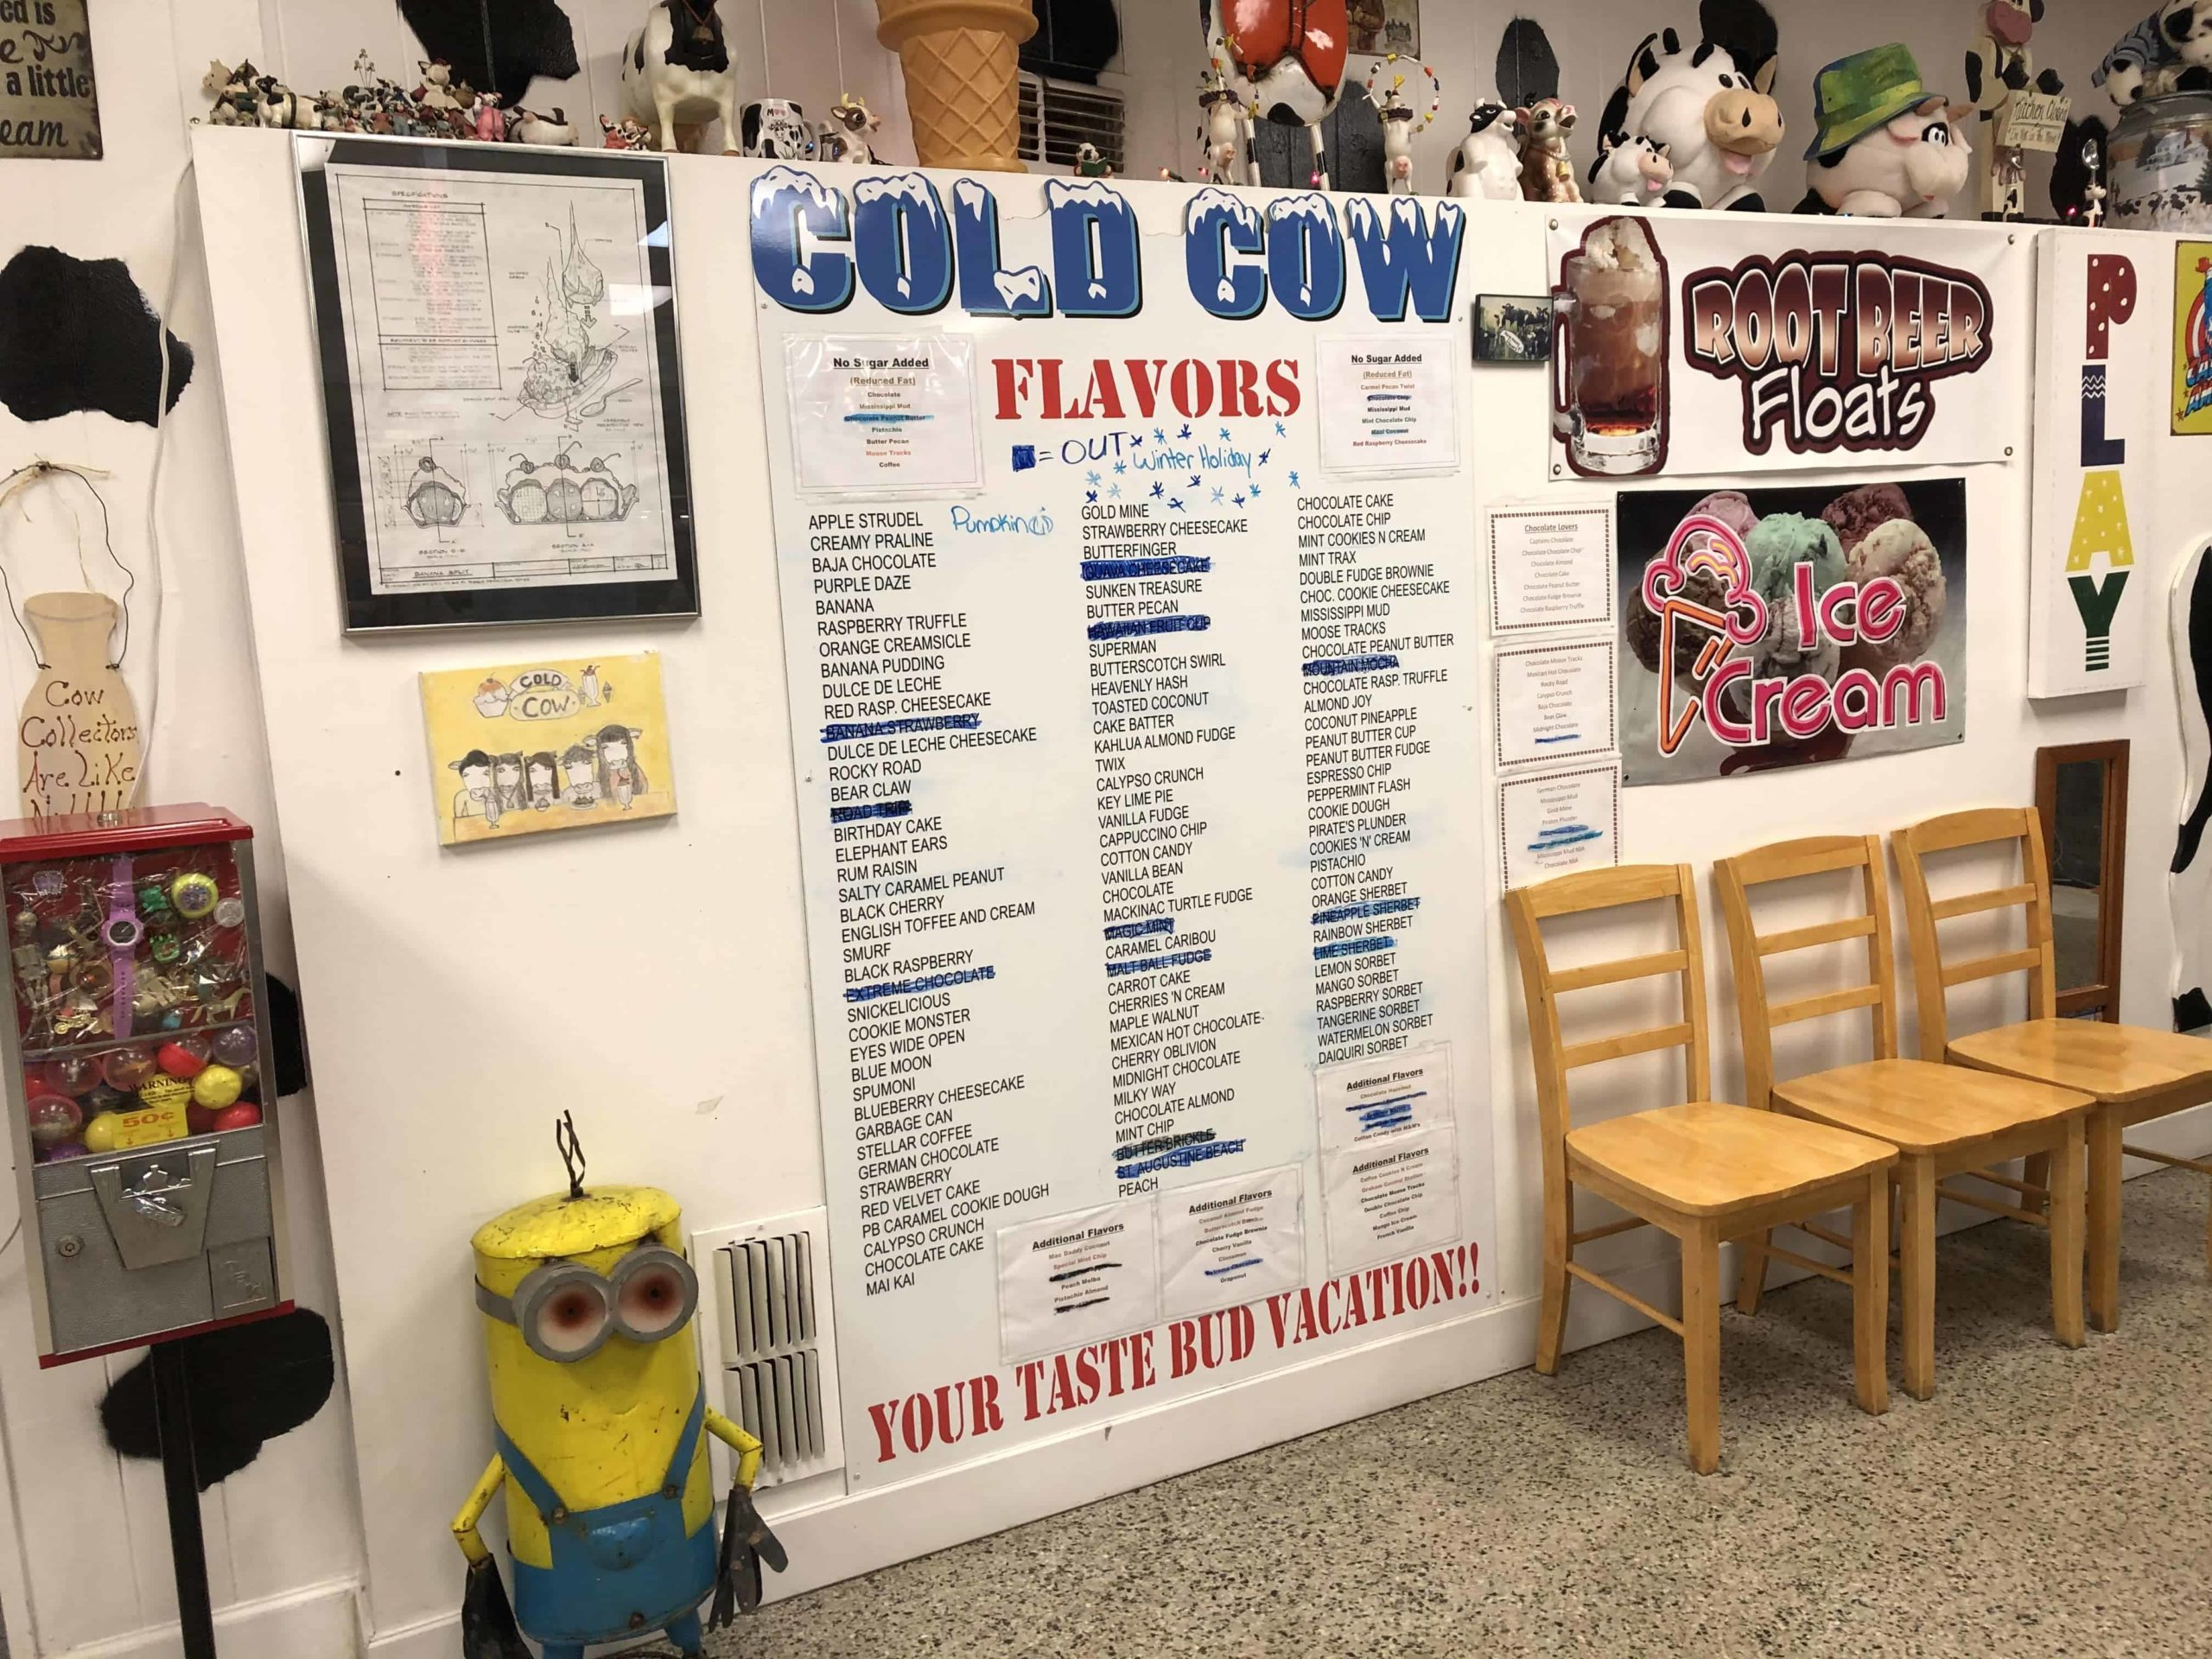 A menu of Cold Cow in St. Augustine, FL.